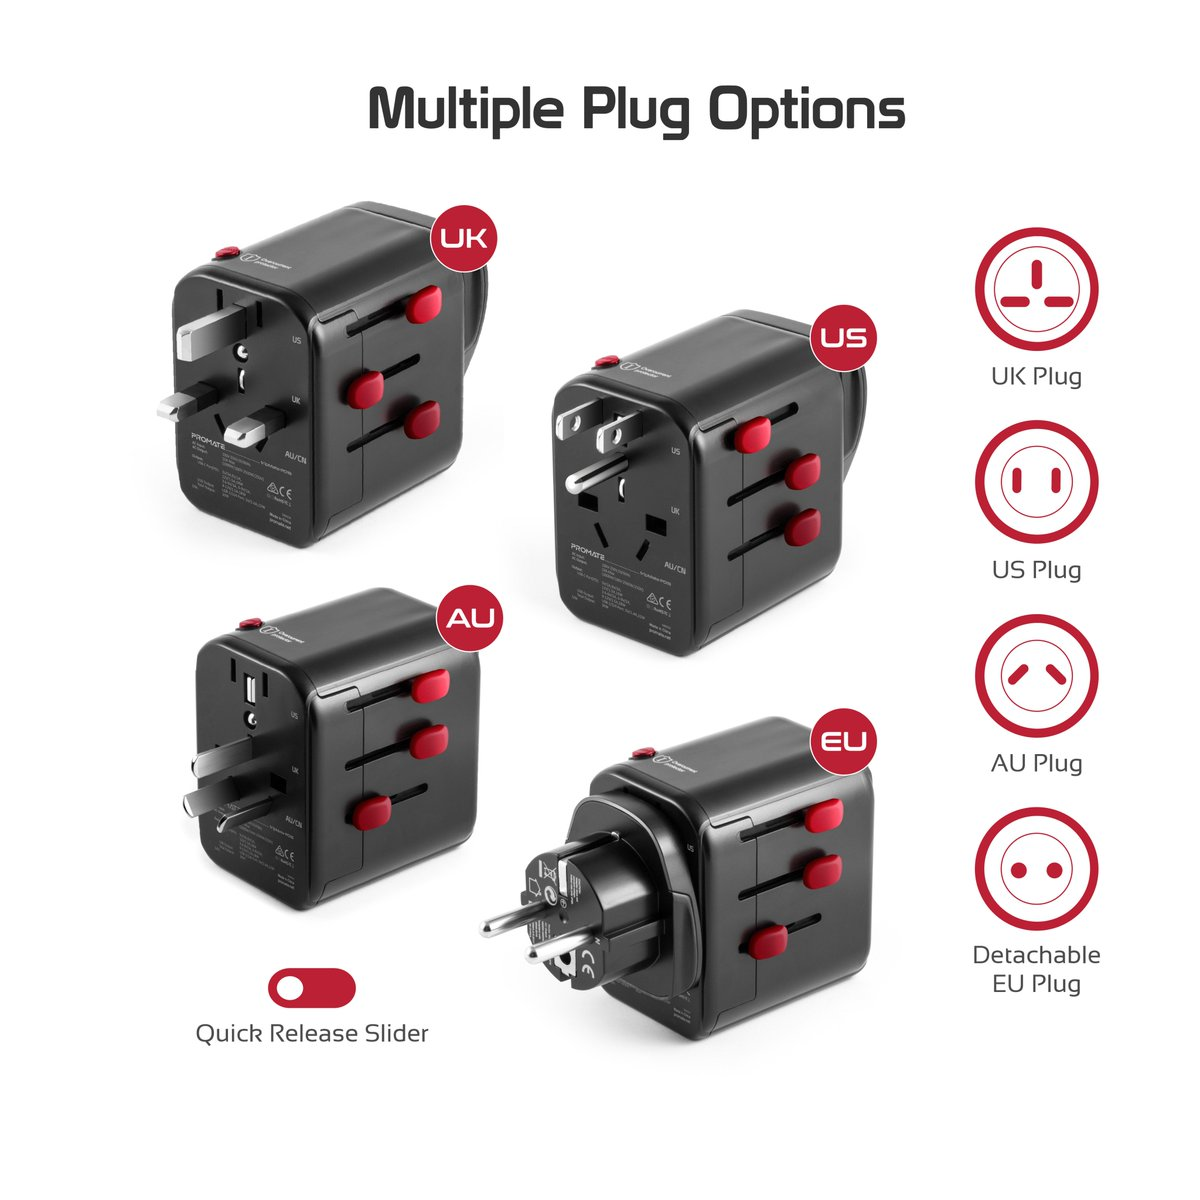 Promate Tripmate-PD18: World's First Grounded Travel Adapter with Resettable fuse & 30Watt Output.  USB-C QC 3.0 & PD 18Watt • 4 USB Ports • Grounding system • Worldwide Compatibility. 😍🤩✈️🚀🛫🏩  #Promate #Power_Delivery #travel #Chargers #adapter https://t.co/uDT4JP2BRD